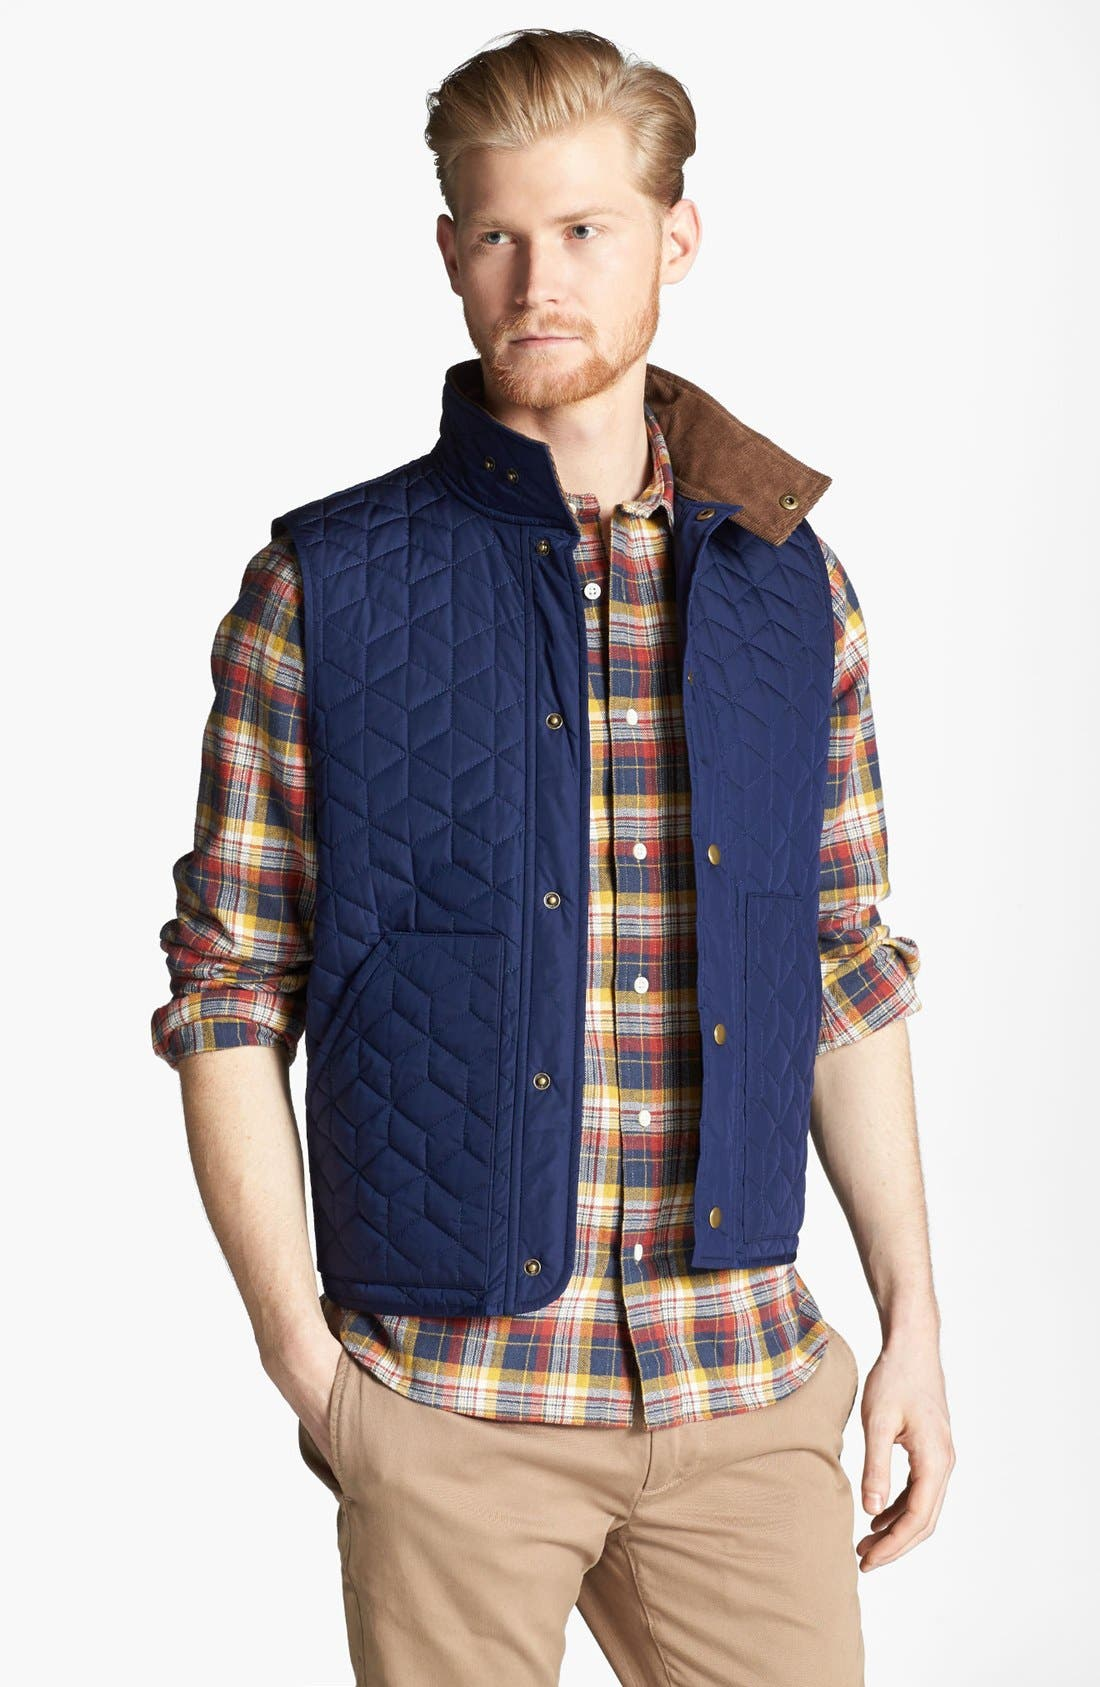 JACK SPADE, 'Herington' Quilted Vest, Main thumbnail 1, color, 400